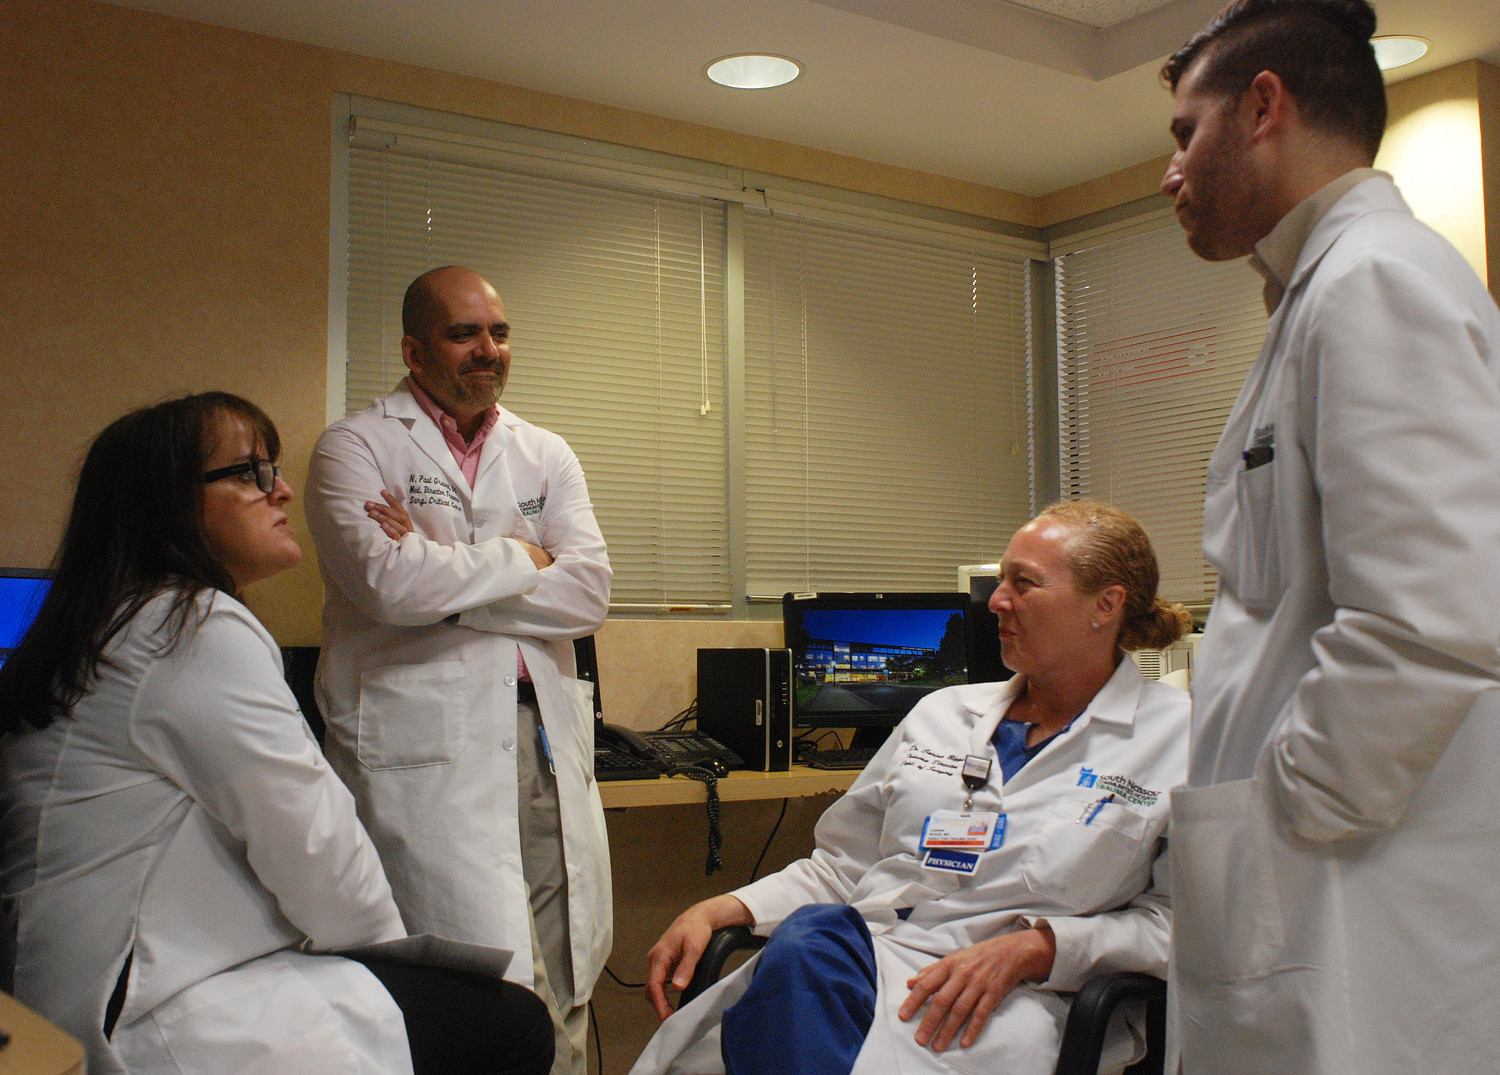 Dr. Carina Biggs, second from left, meeting with members of South Nassau's trauma team, including, from left, Margaret Puya, a nurse and the trauma program manager; Dr. Paul Grewal, the program's associate medical director; and Dr. Joshua Melanmed, a surgical resident.